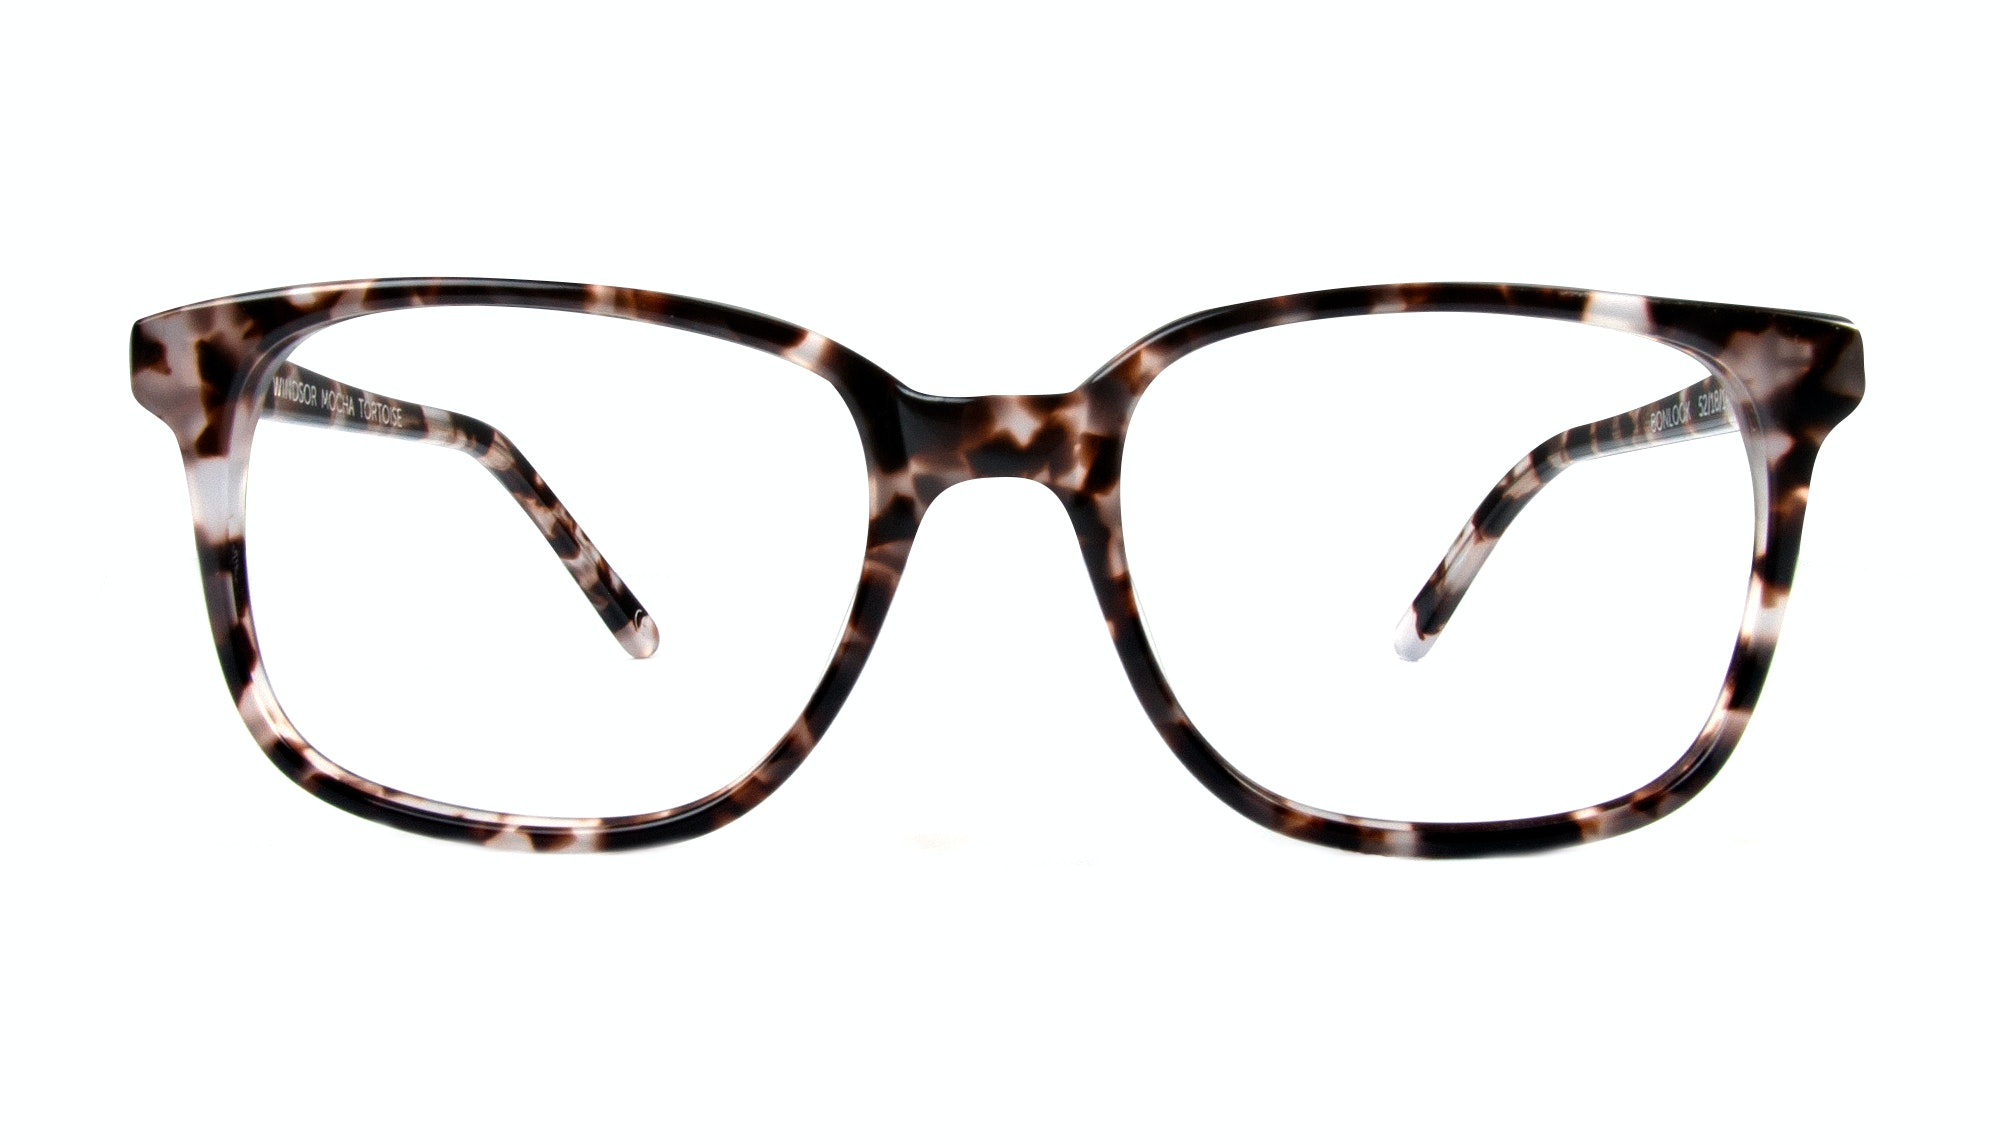 Affordable Fashion Glasses Rectangle Square Eyeglasses Women Windsor Mocha Tortoise